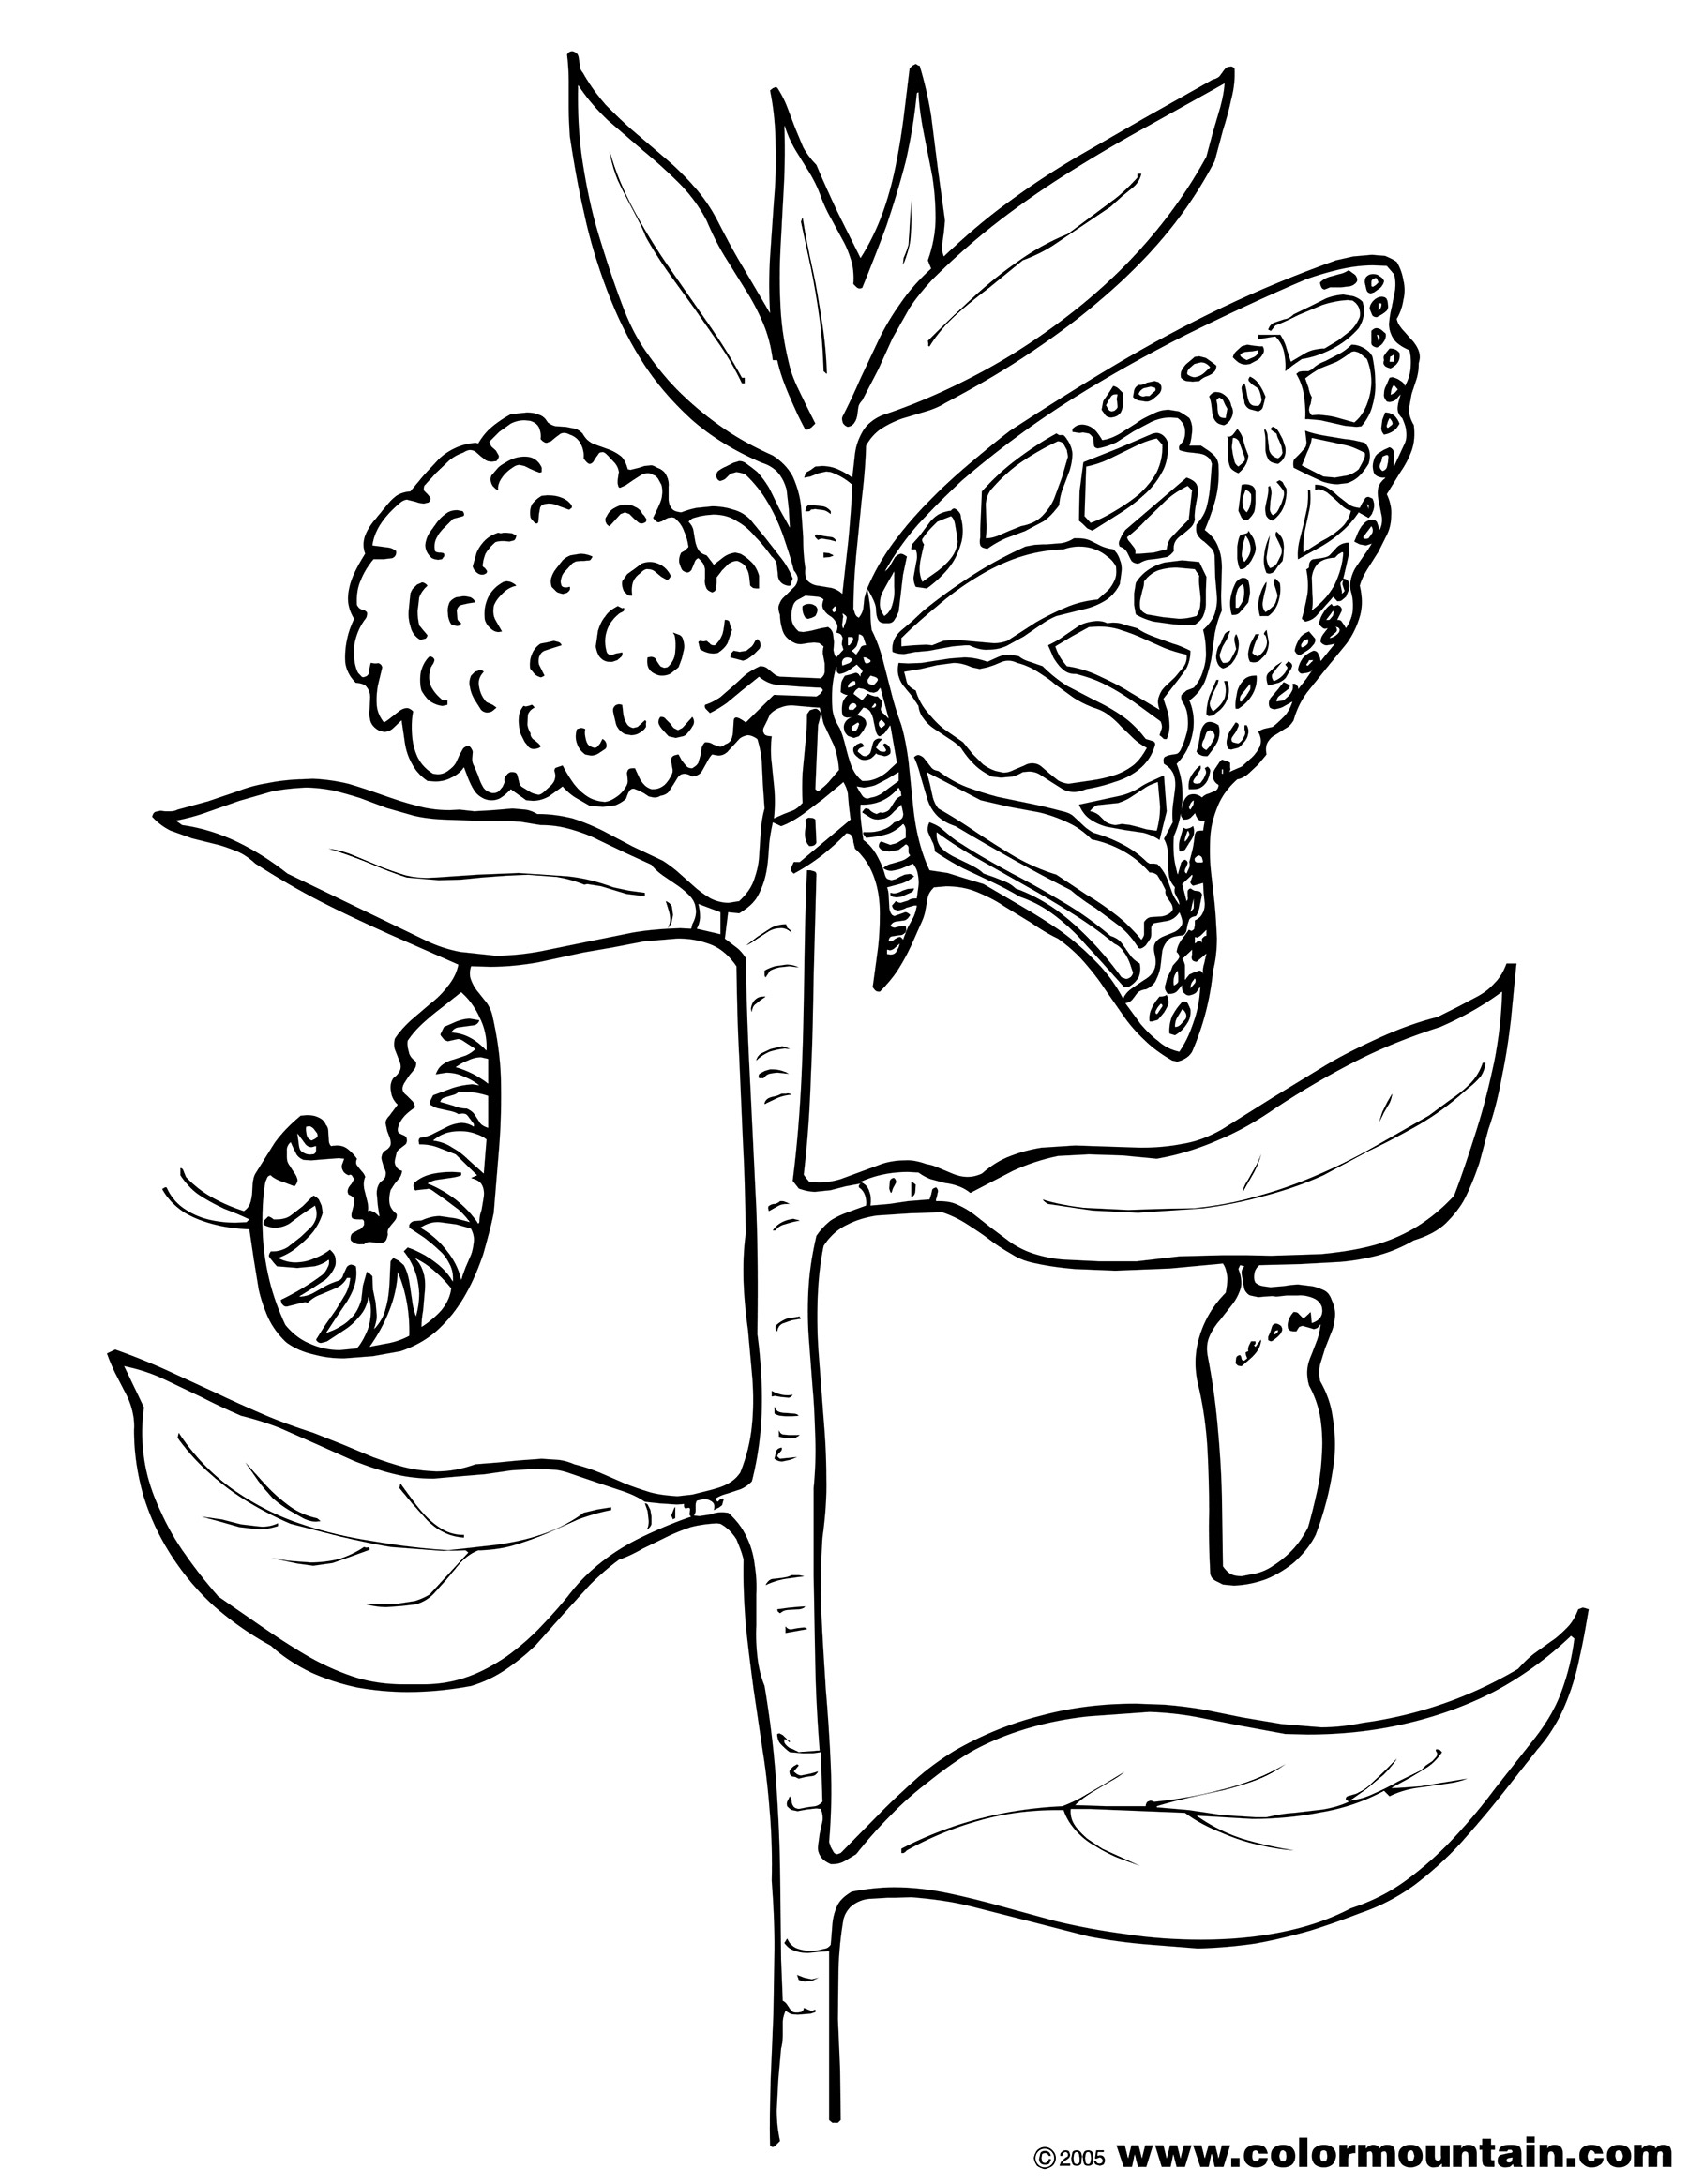 Butterfly Cocoon Drawing At Getdrawings